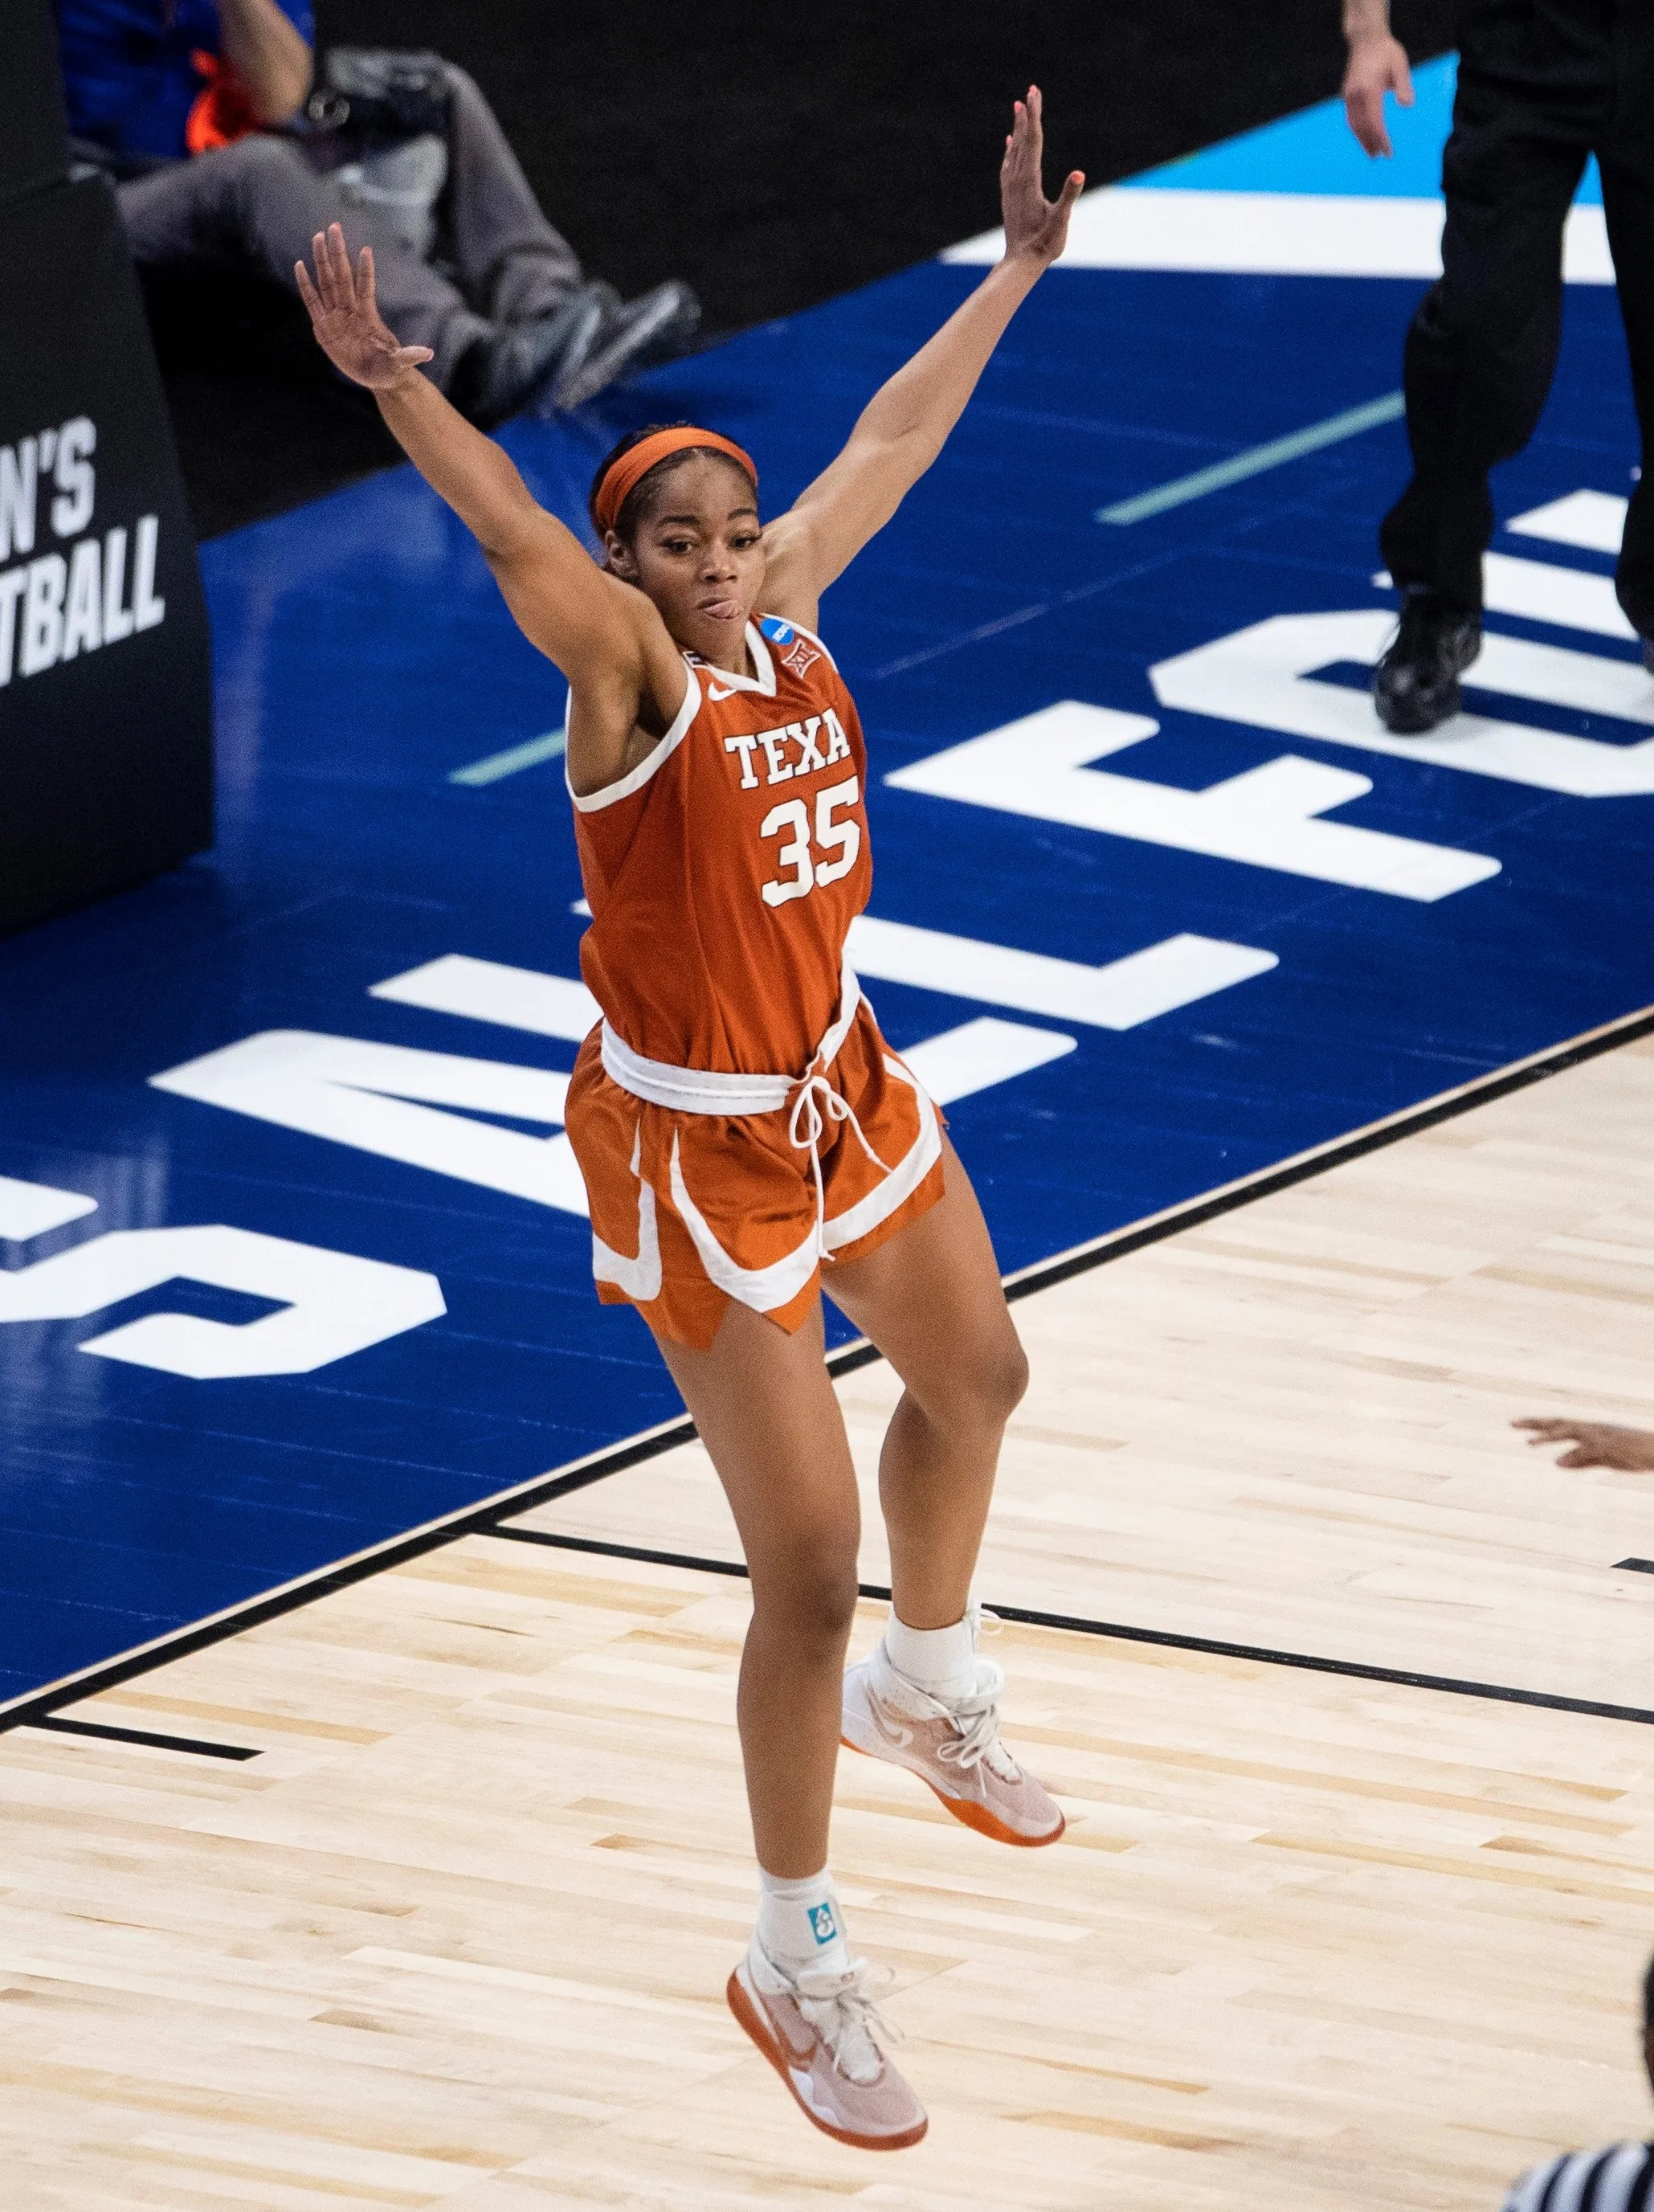 Texas forward Charli Collier helped lead the Longhorns to the Elite Eight of the NCAA women's basketball tournament following an upset of No. 2 seed Maryland in the Sweet 16.